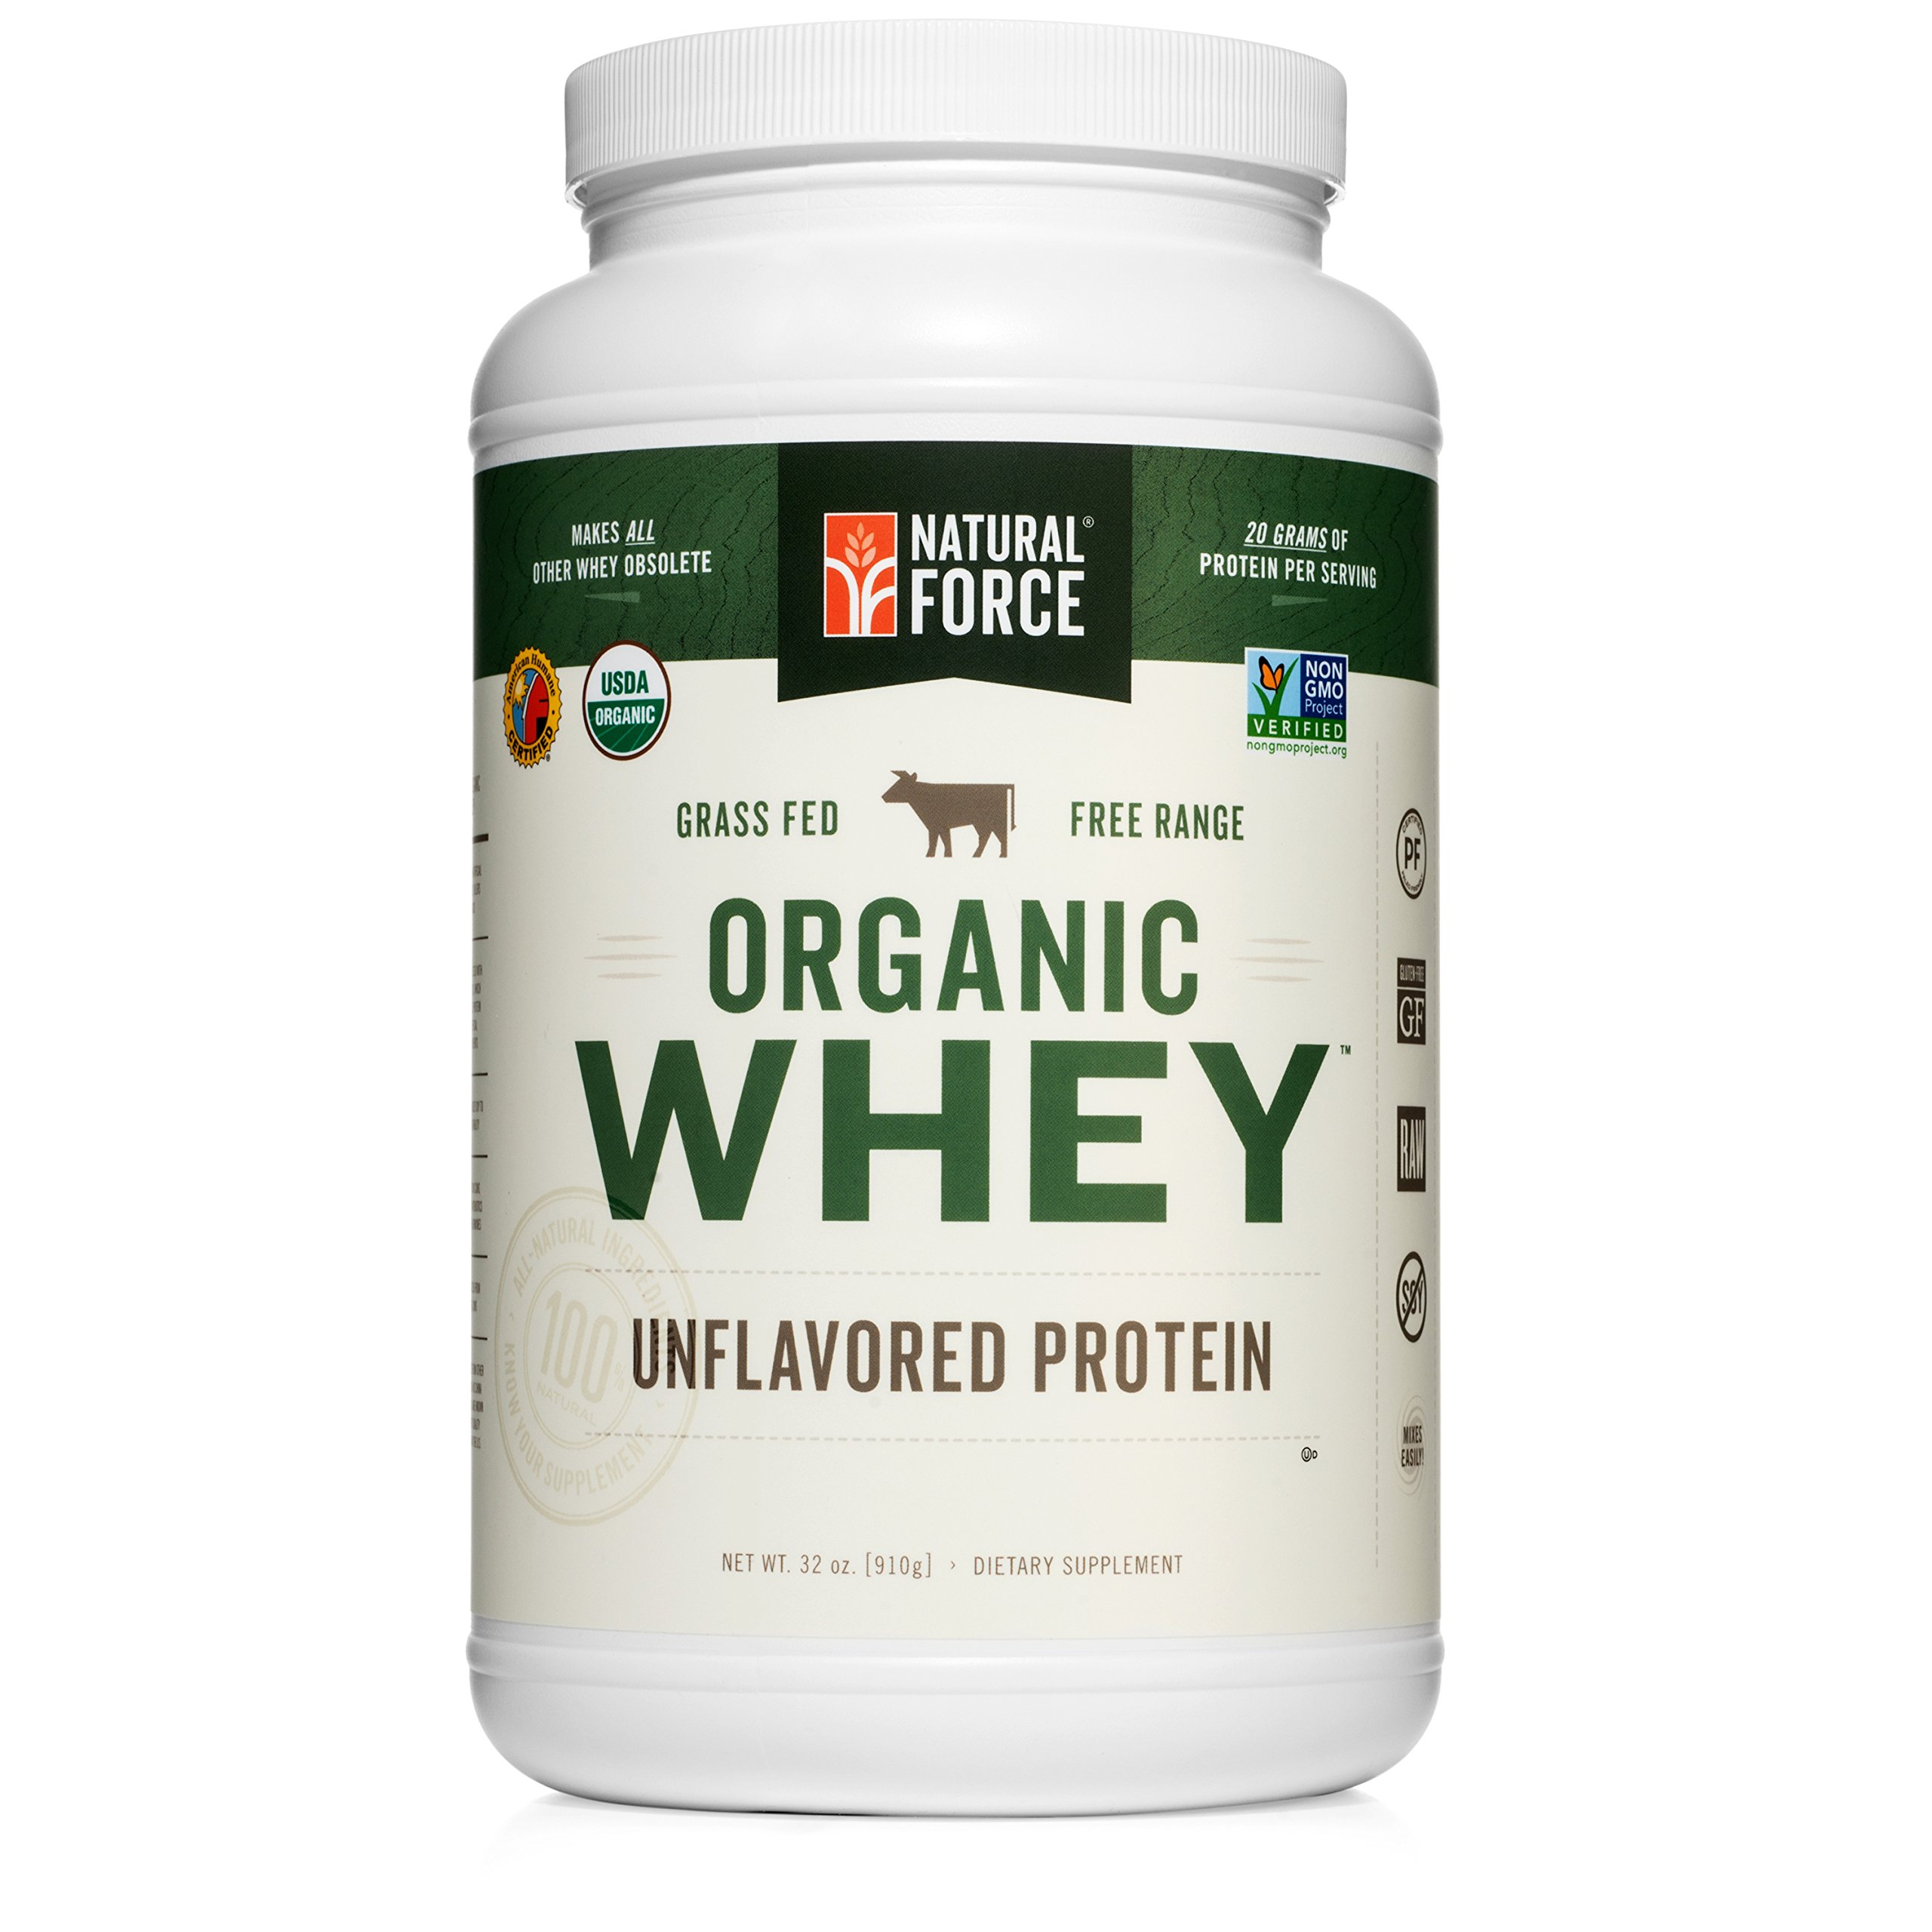 Natural Force® Undenatured Organic Whey Protein Powder *UNFLAVORED* Grass Fed Whey from California Farms – Raw Organic Whey, Paleo, Gluten Free, Natural Whey Protein, 32 oz. Bulk